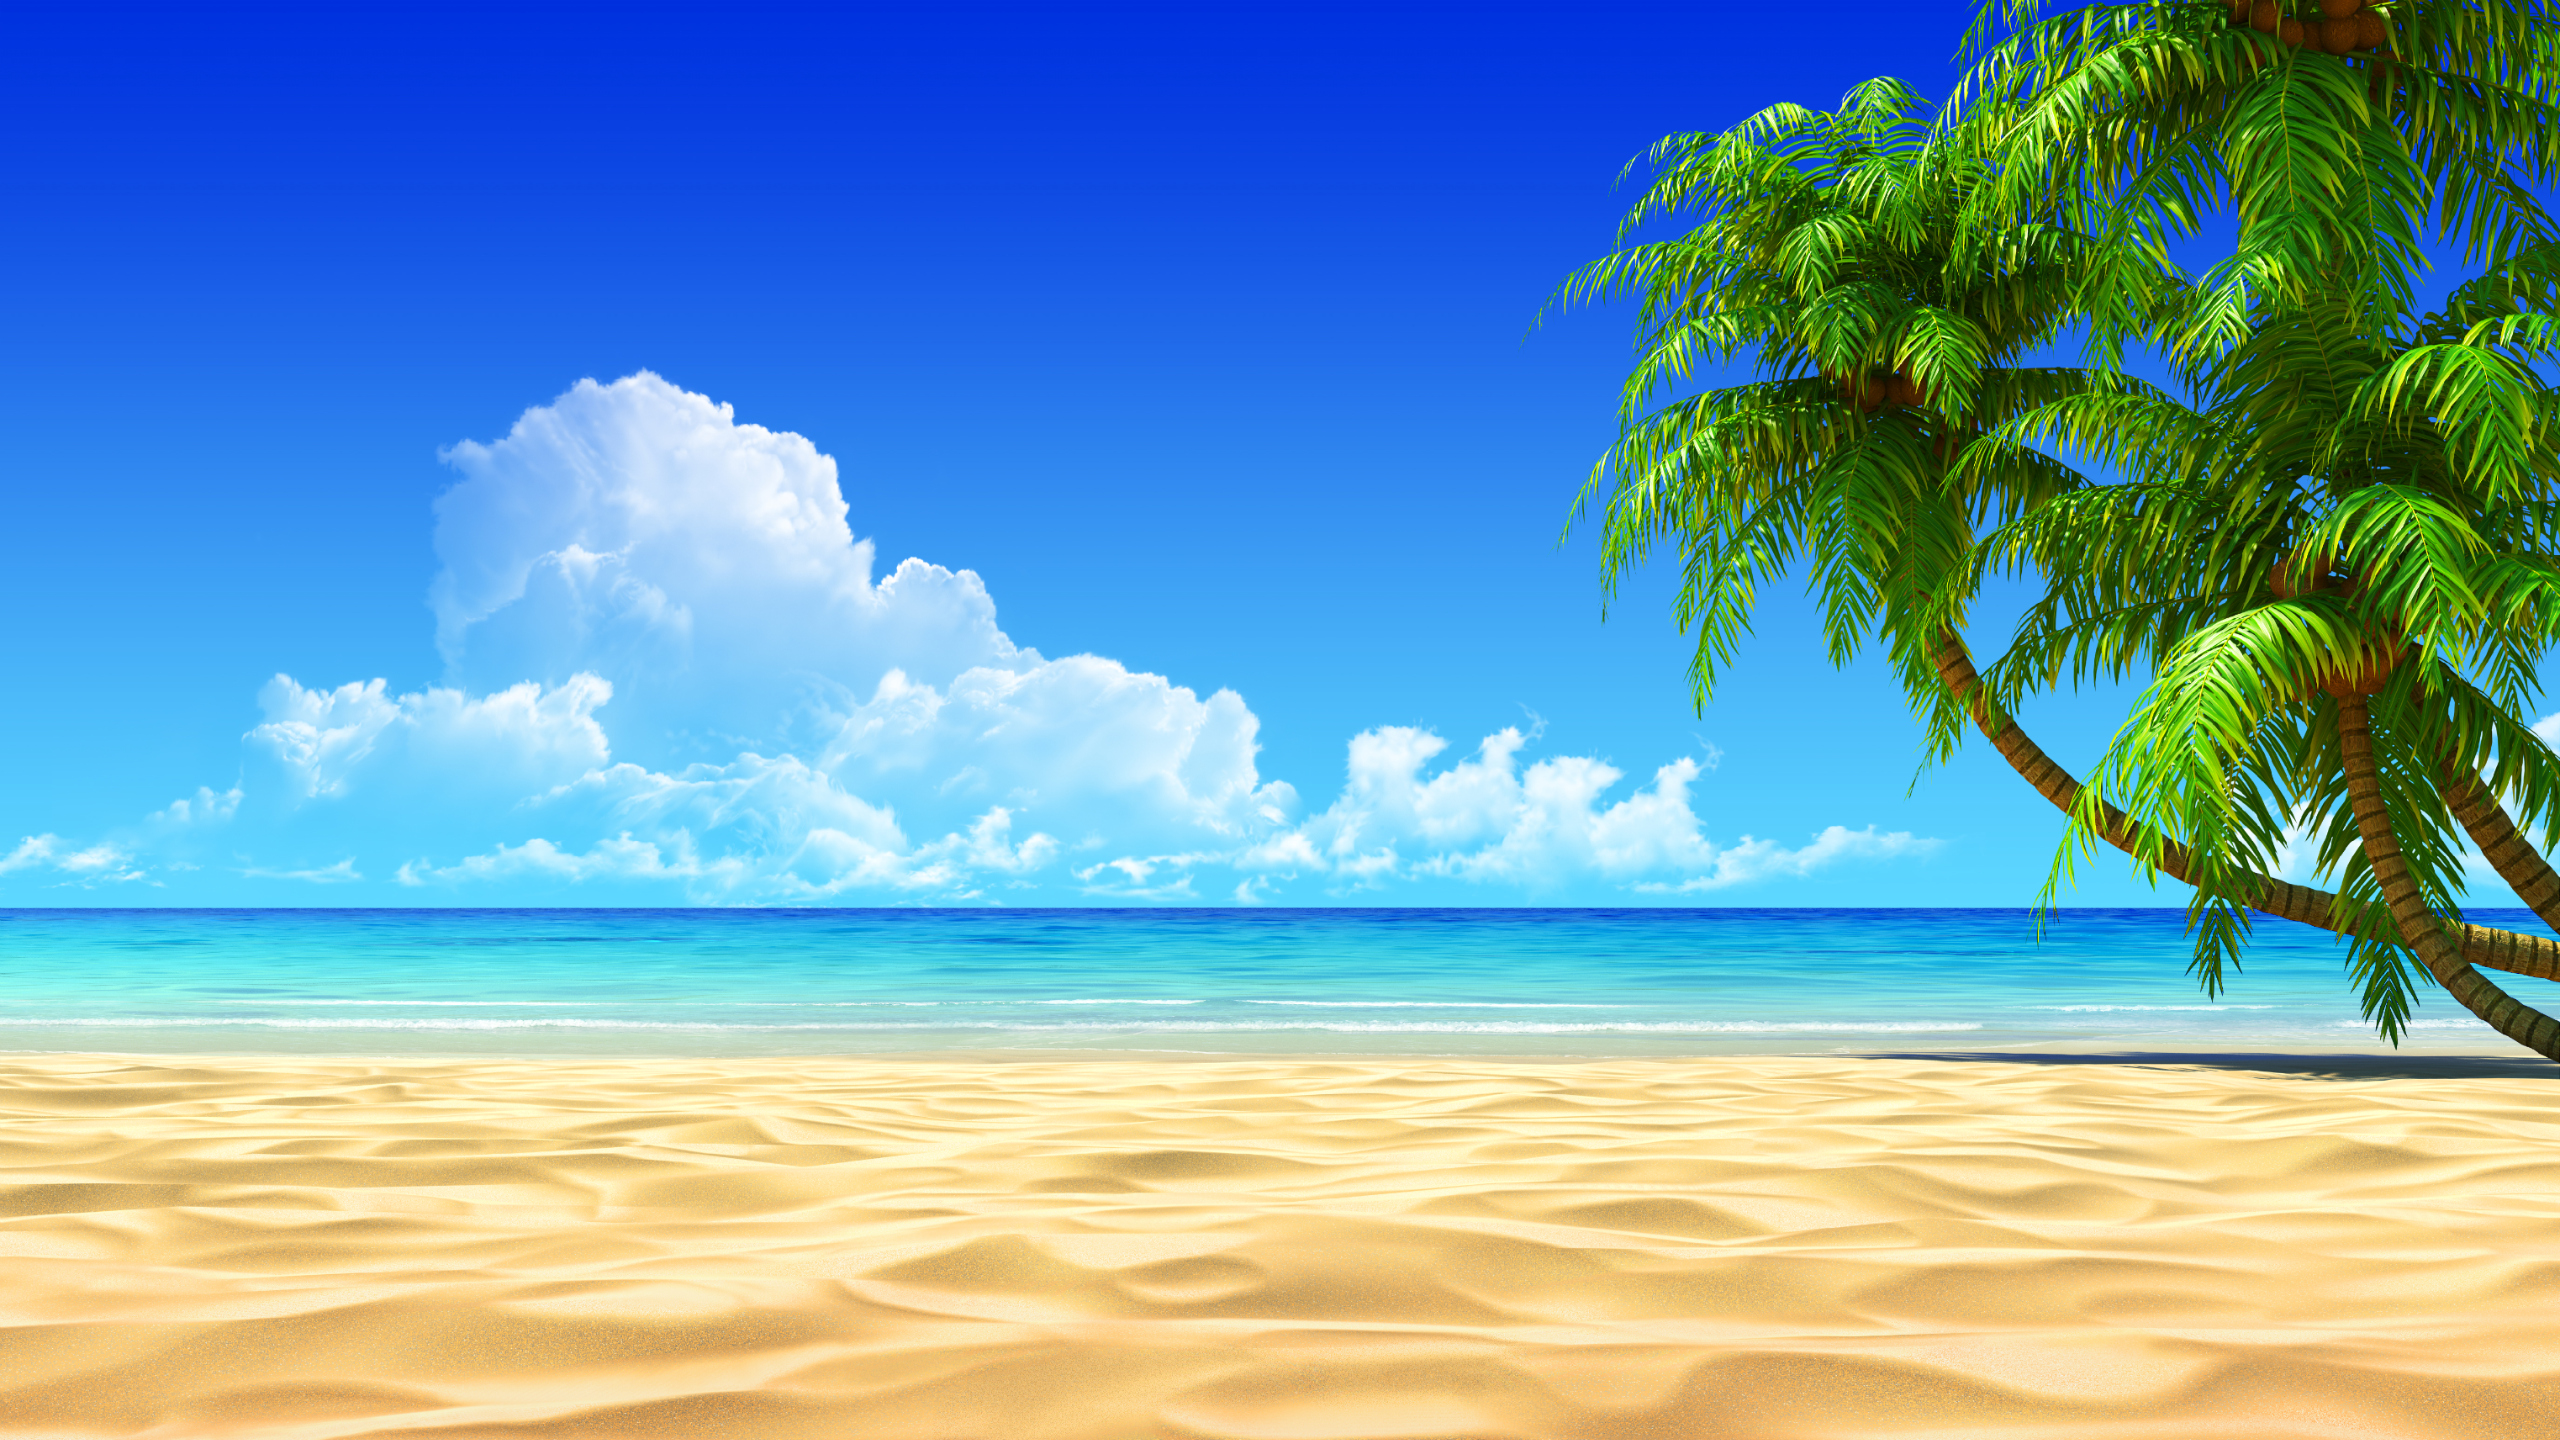 Beach background clipart free clip library library Summer clip art beach clipart image - ClipartPost clip library library